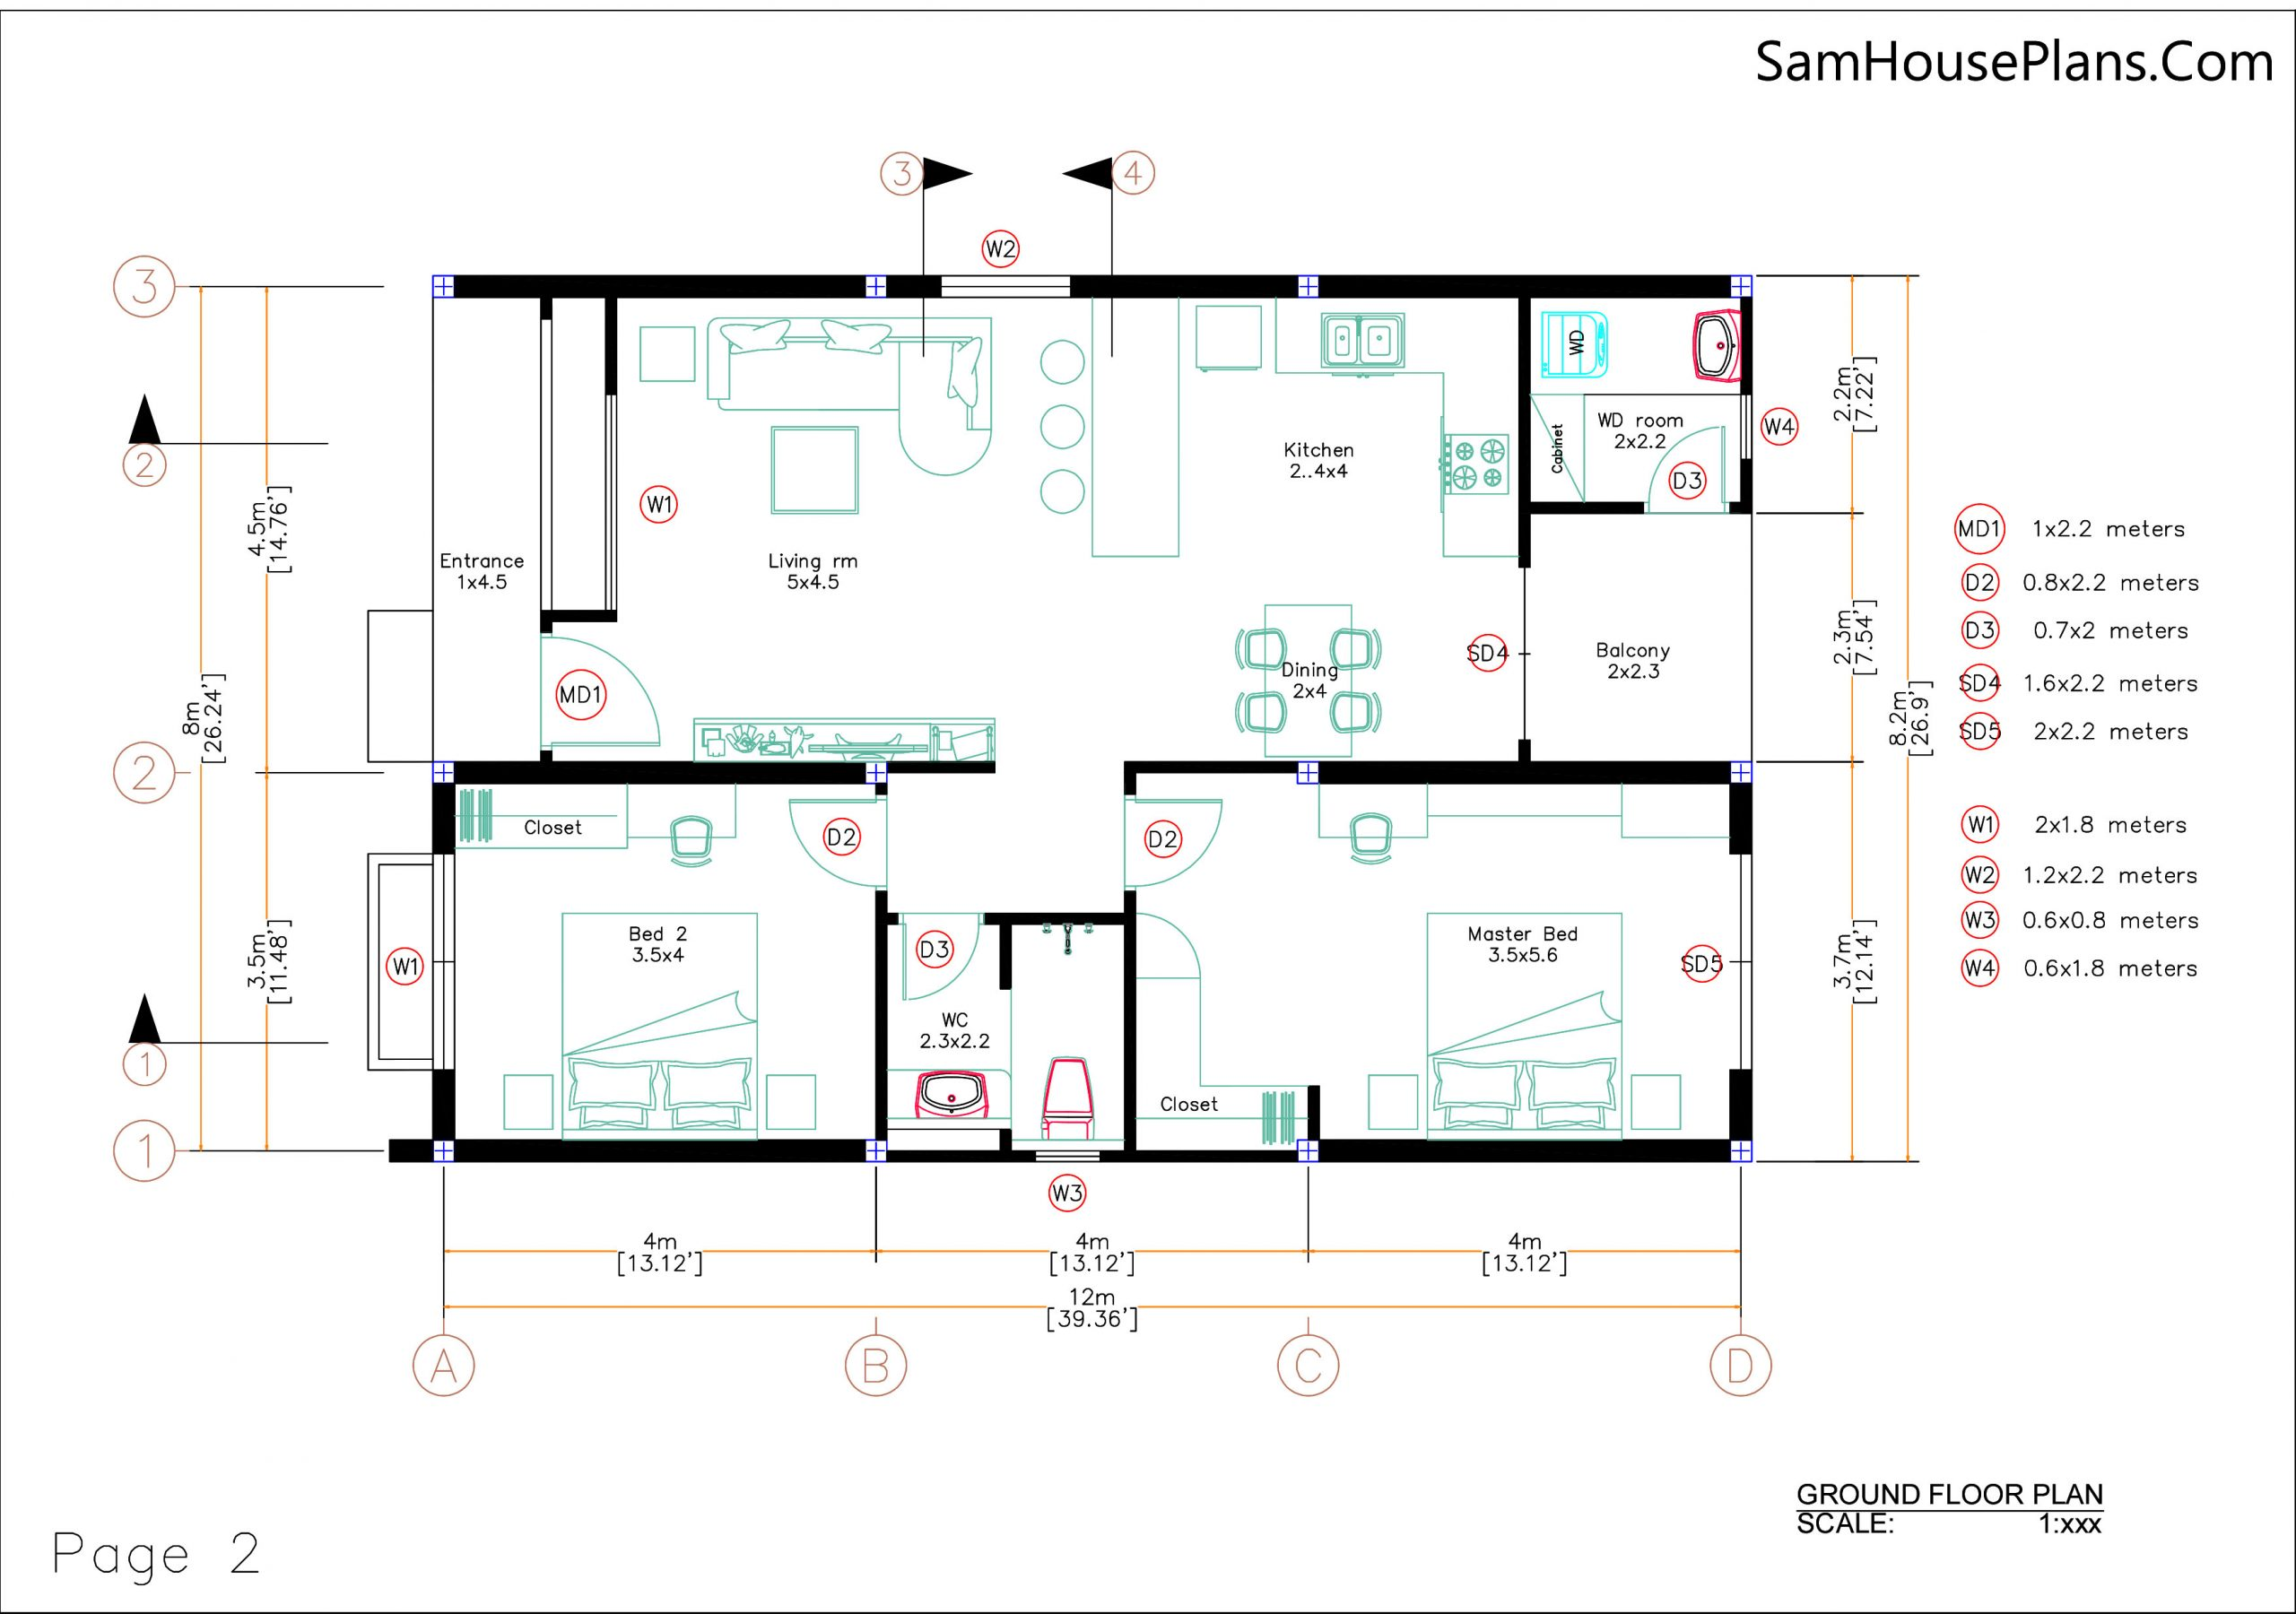 Small House Plan 8x12 M with 2 Bedrooms PDF Full Plans layout plan